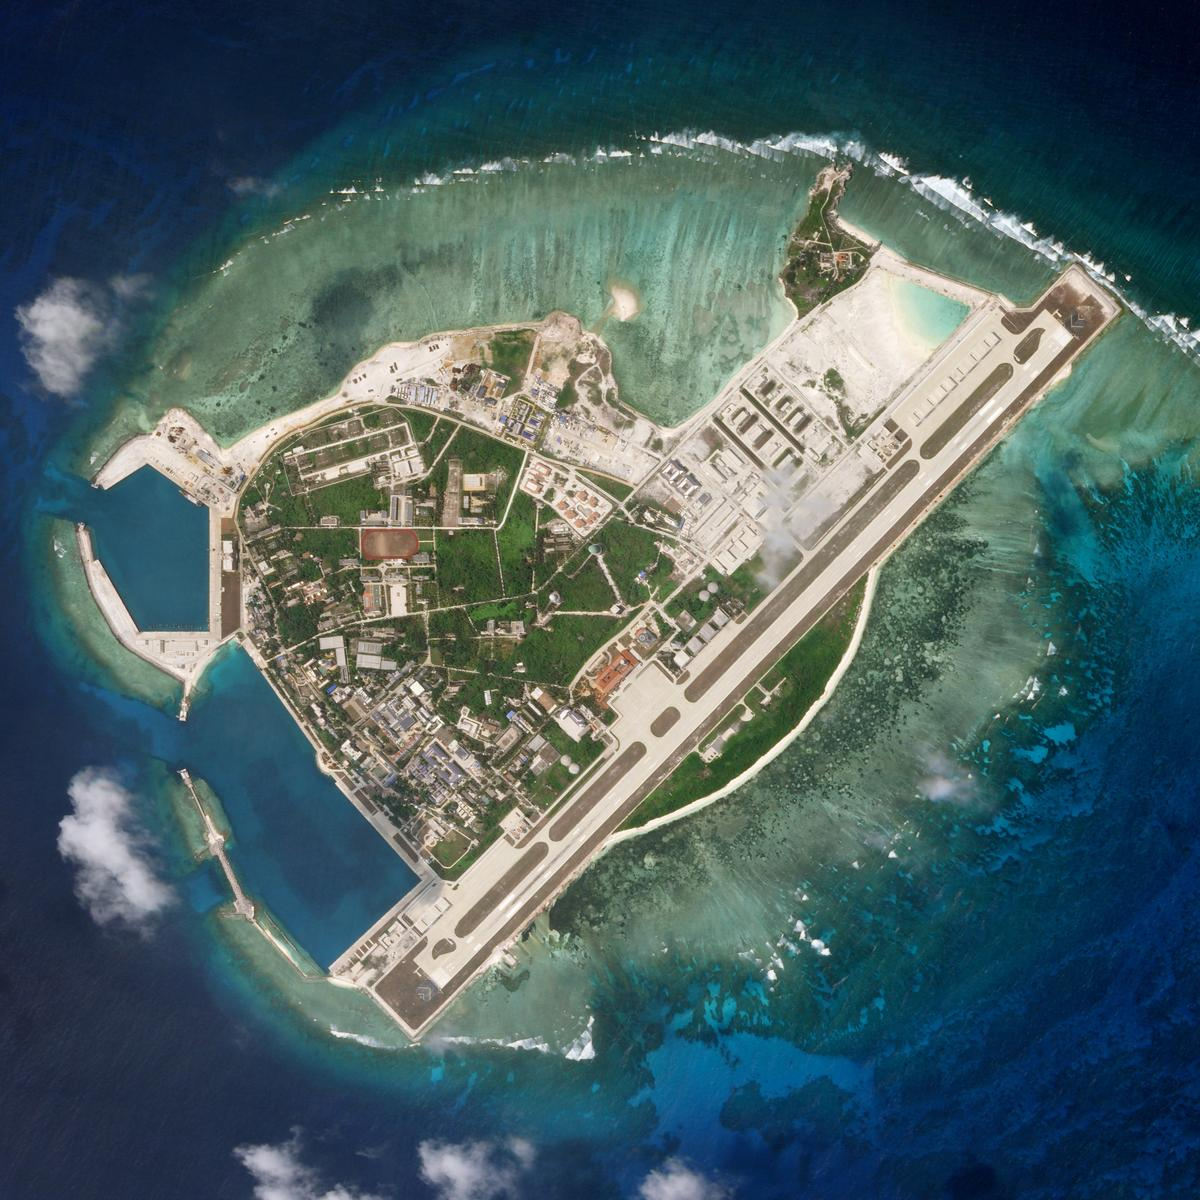 4b9a38cfc2d Concrete and coral: Beijing's South China Sea building boom fuels ...